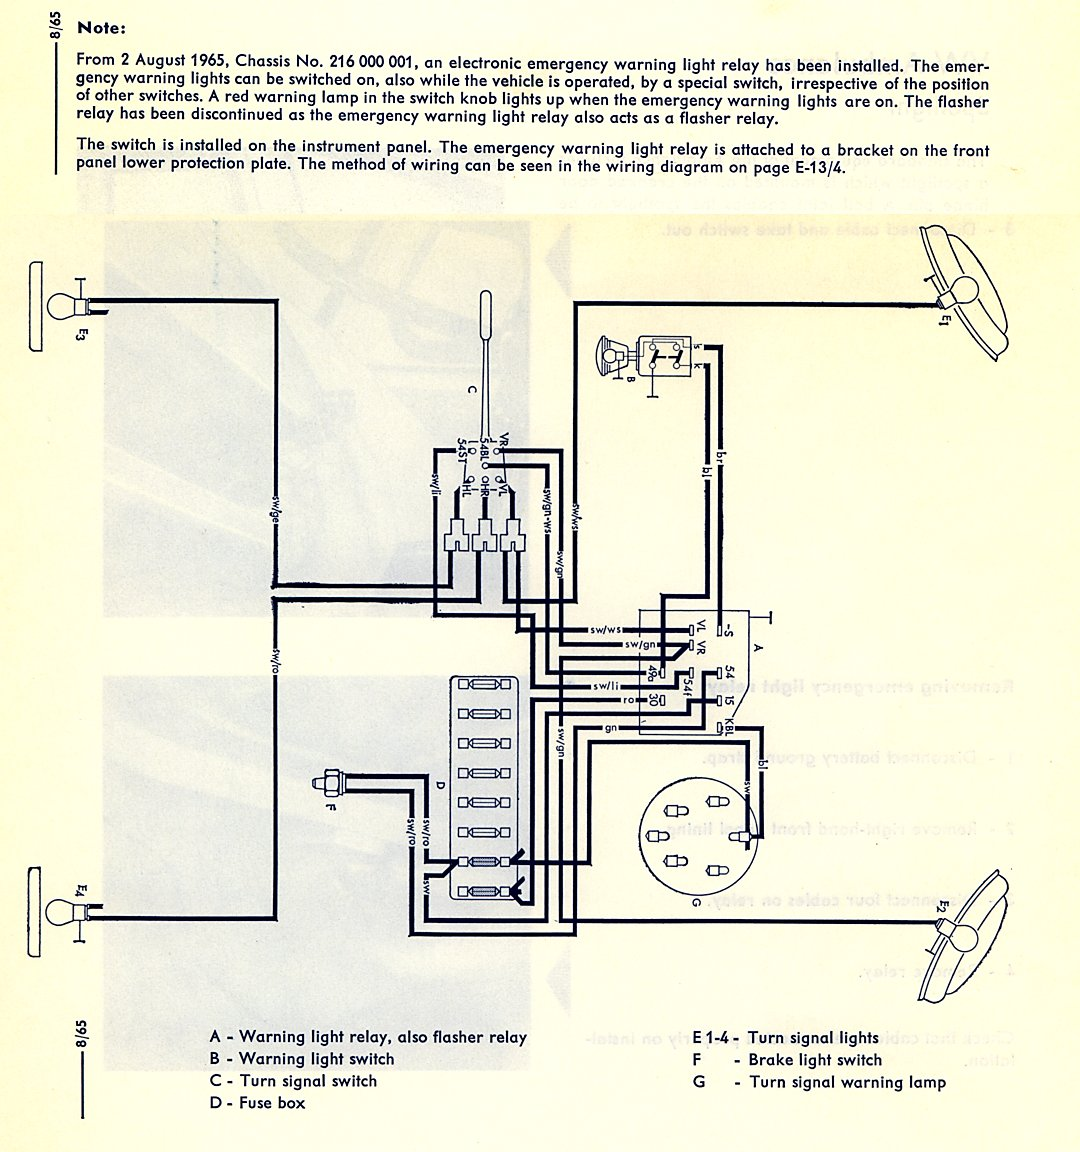 1964 Vw Headlight Switch Wiring Diagram Schematics 57 Chevy Wiper Motor Thesamba Com Type 2 Diagrams Ford